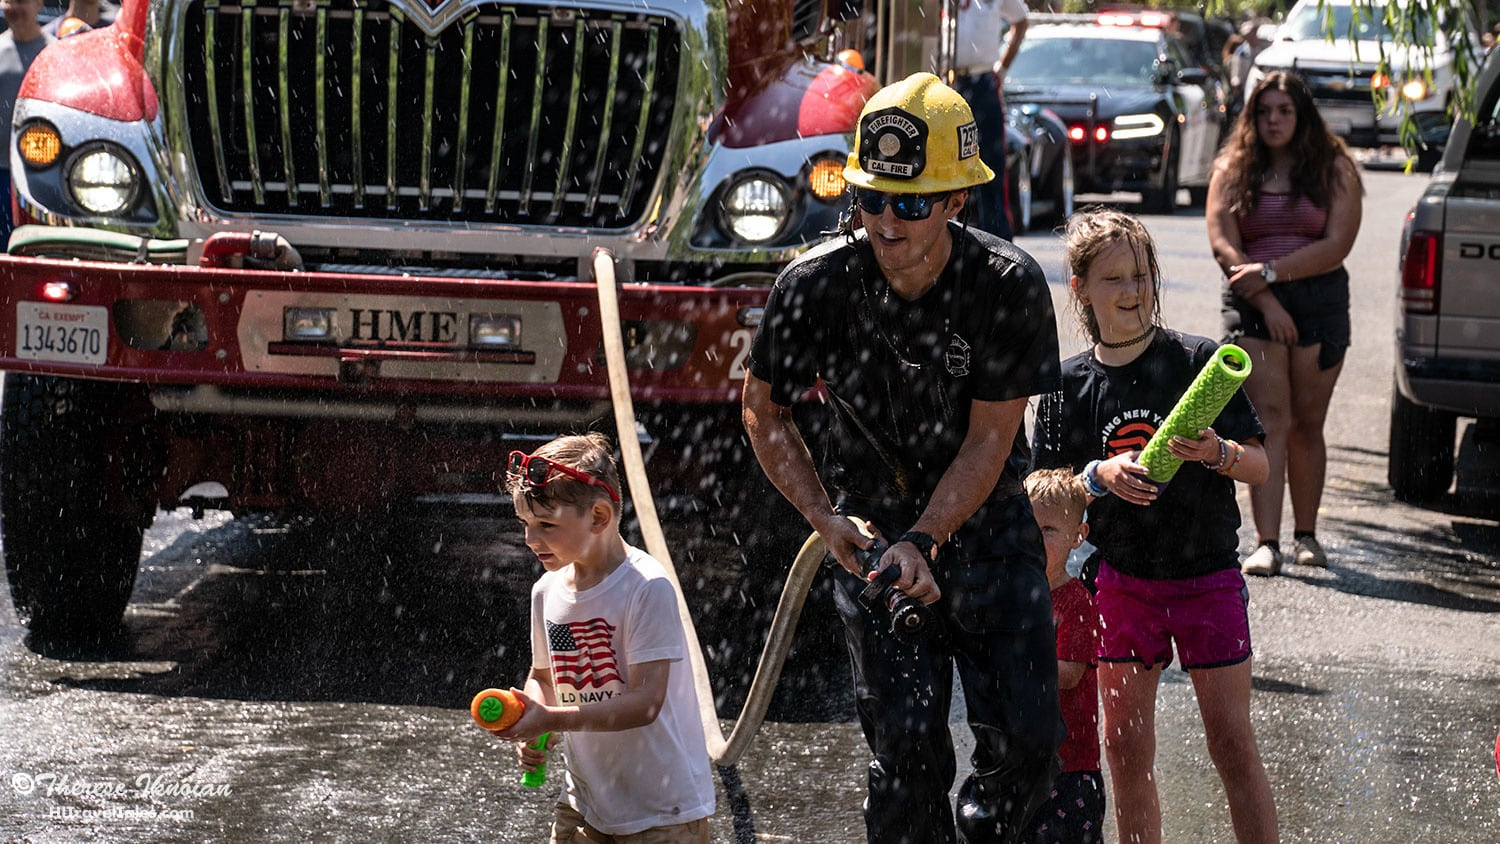 The little ones are treated well and even allowed to hold the fire hose sometimes.